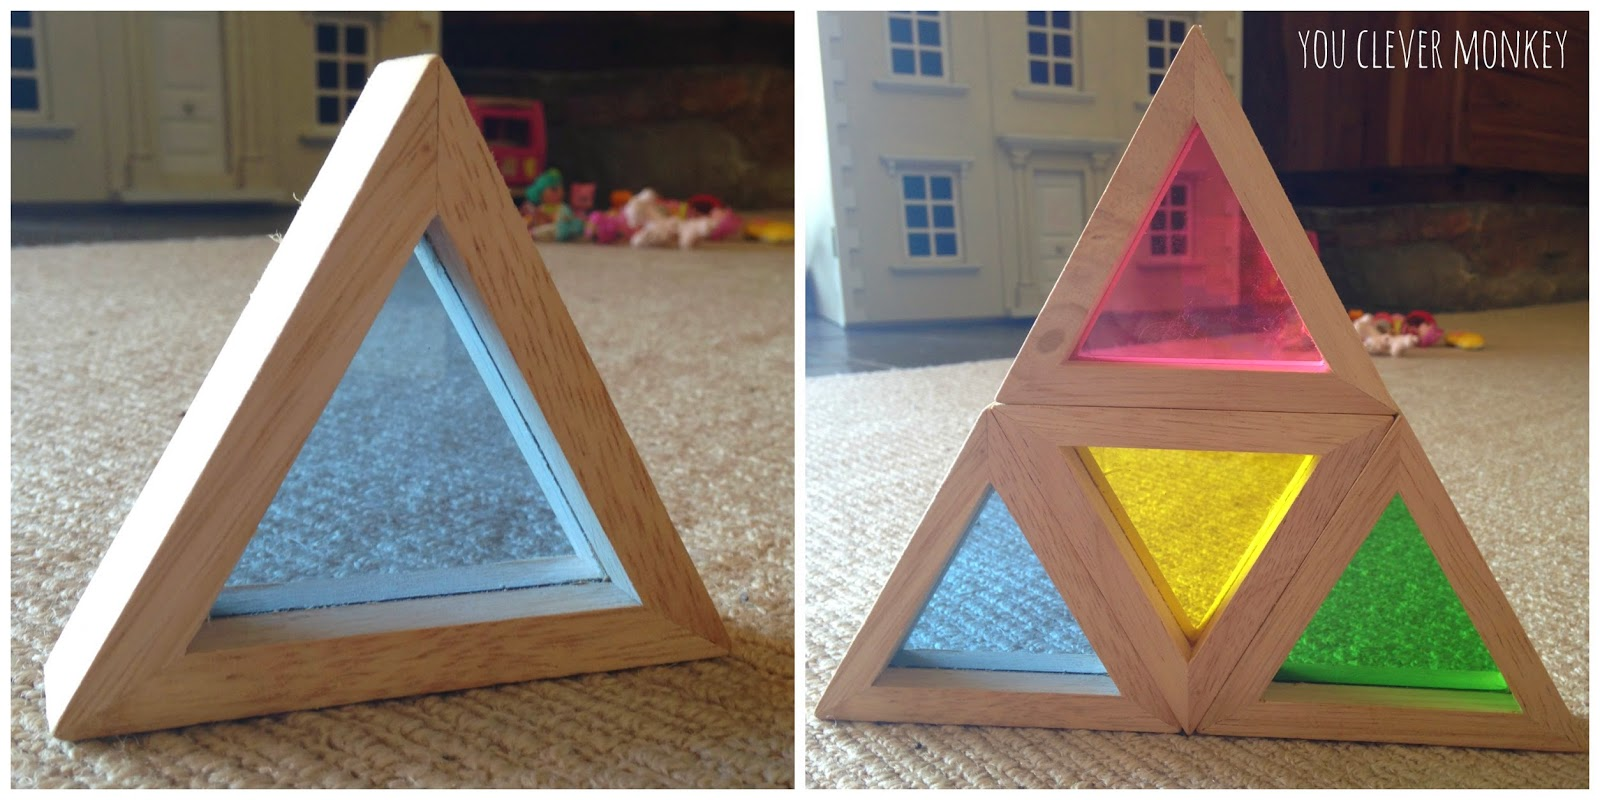 Exploring fractions with wooden rainbow blocks.  For more, visit www.youclevermonkey.com